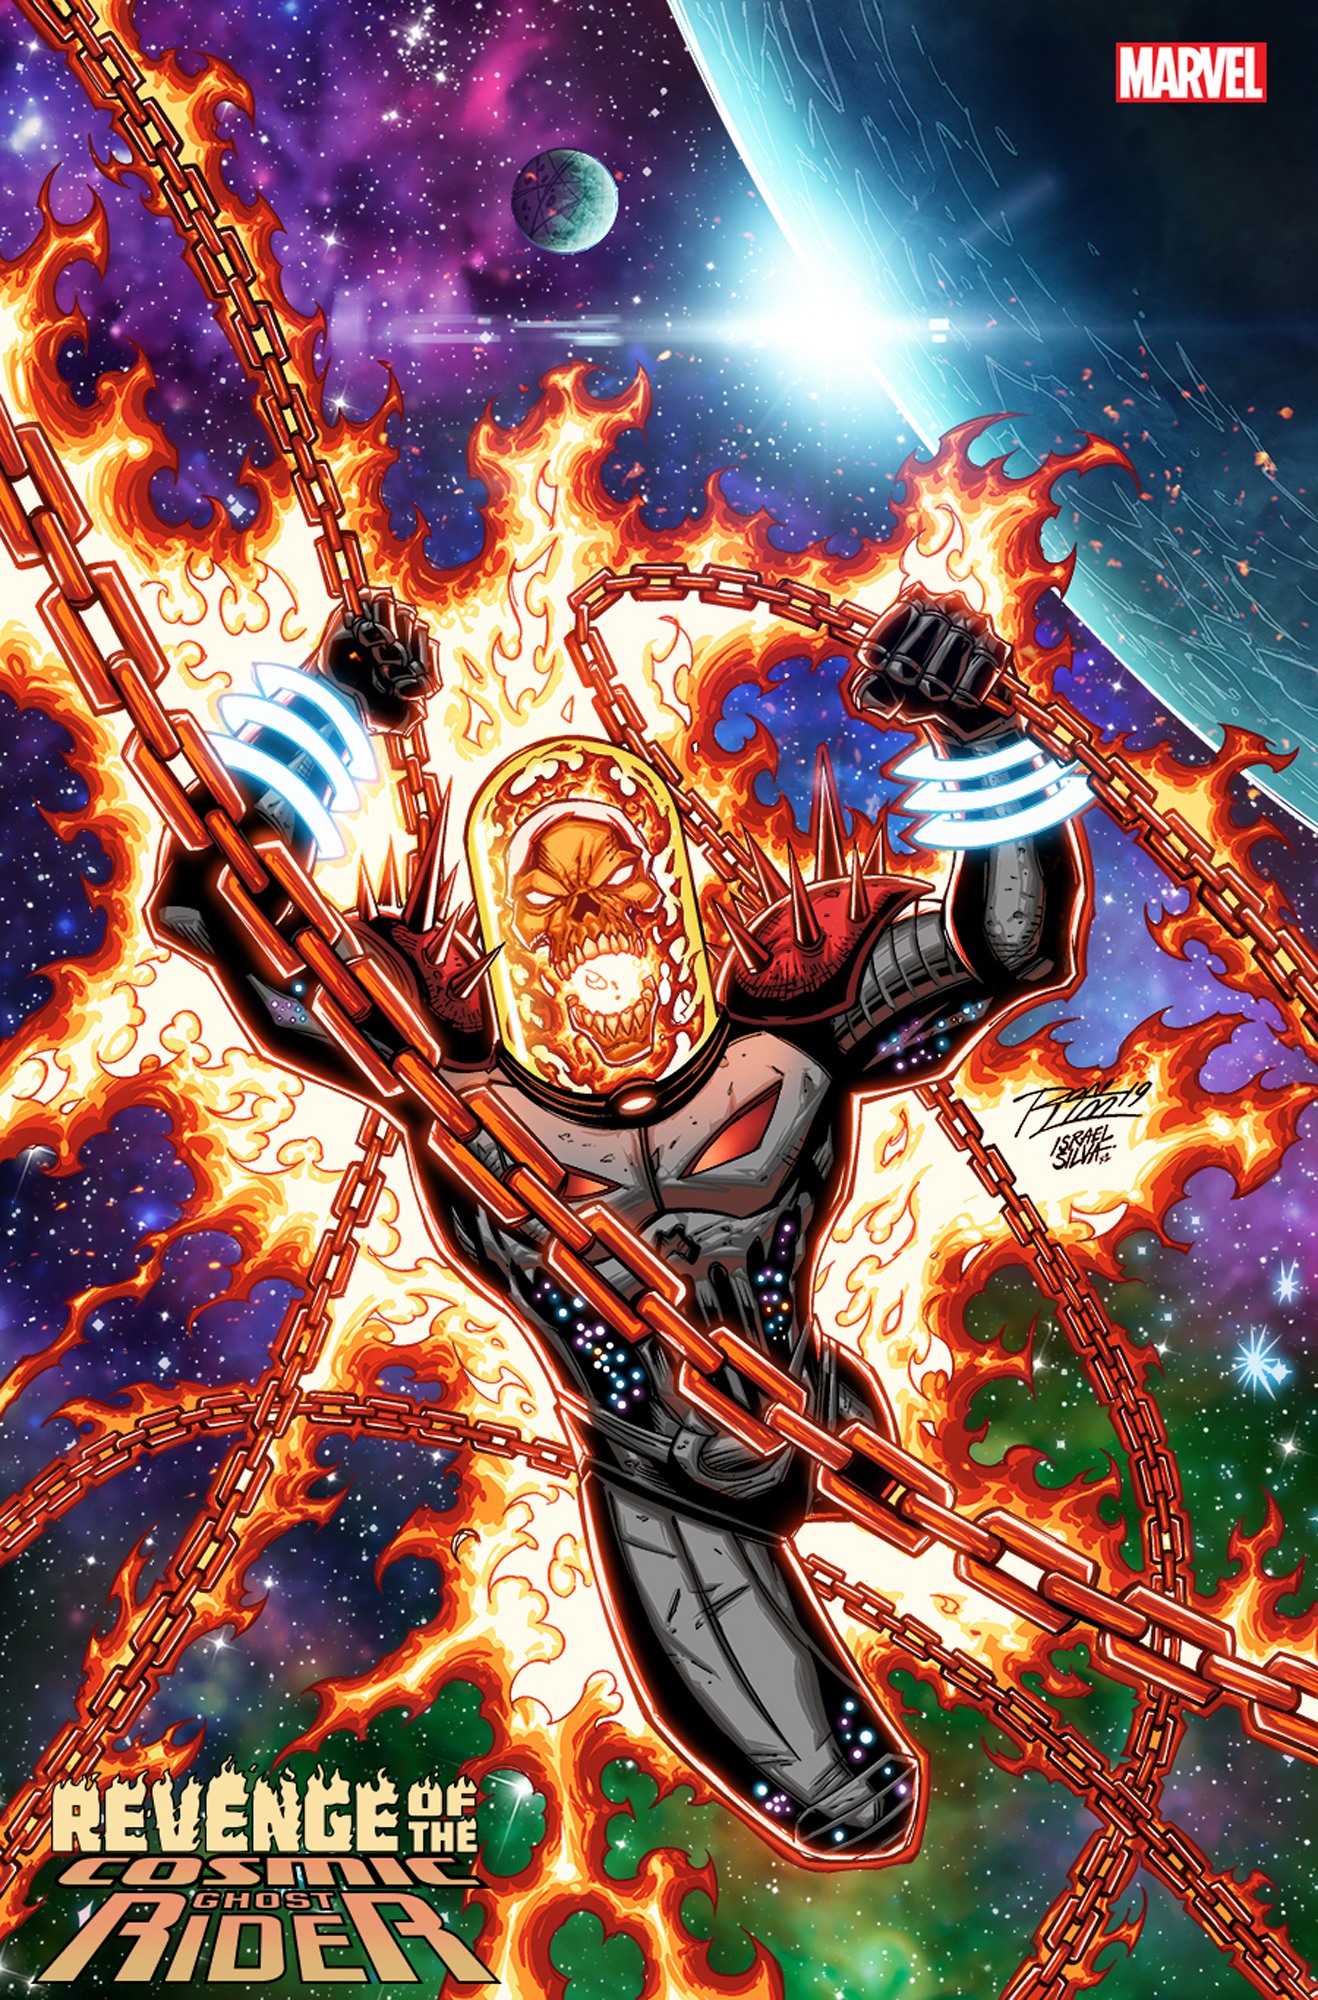 REVENGE OF COSMIC GHOST RIDER #1 (OF 5) RON LIM VAR